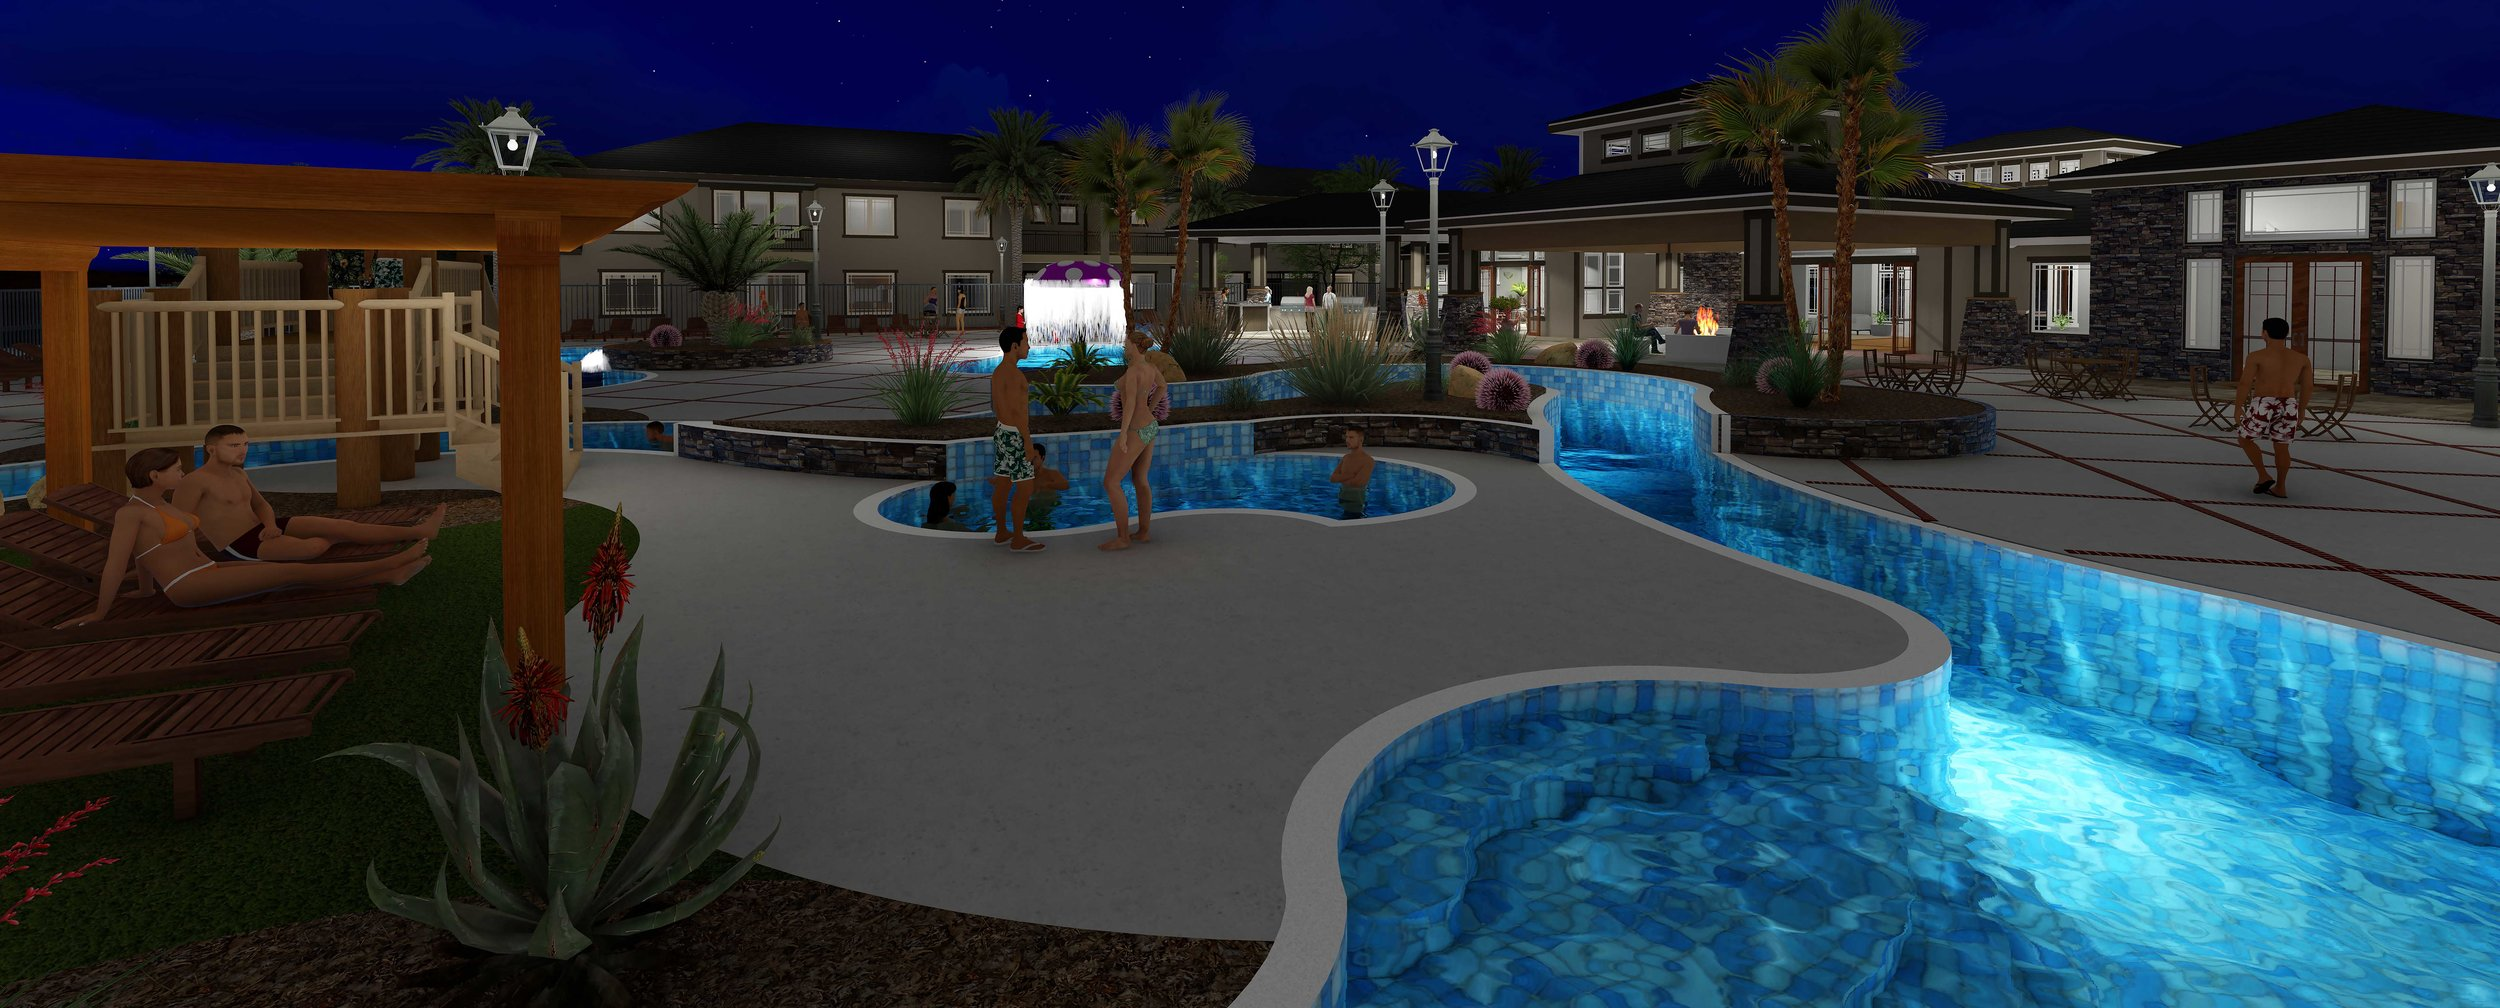 Pool-ZionVillage-night.jpg